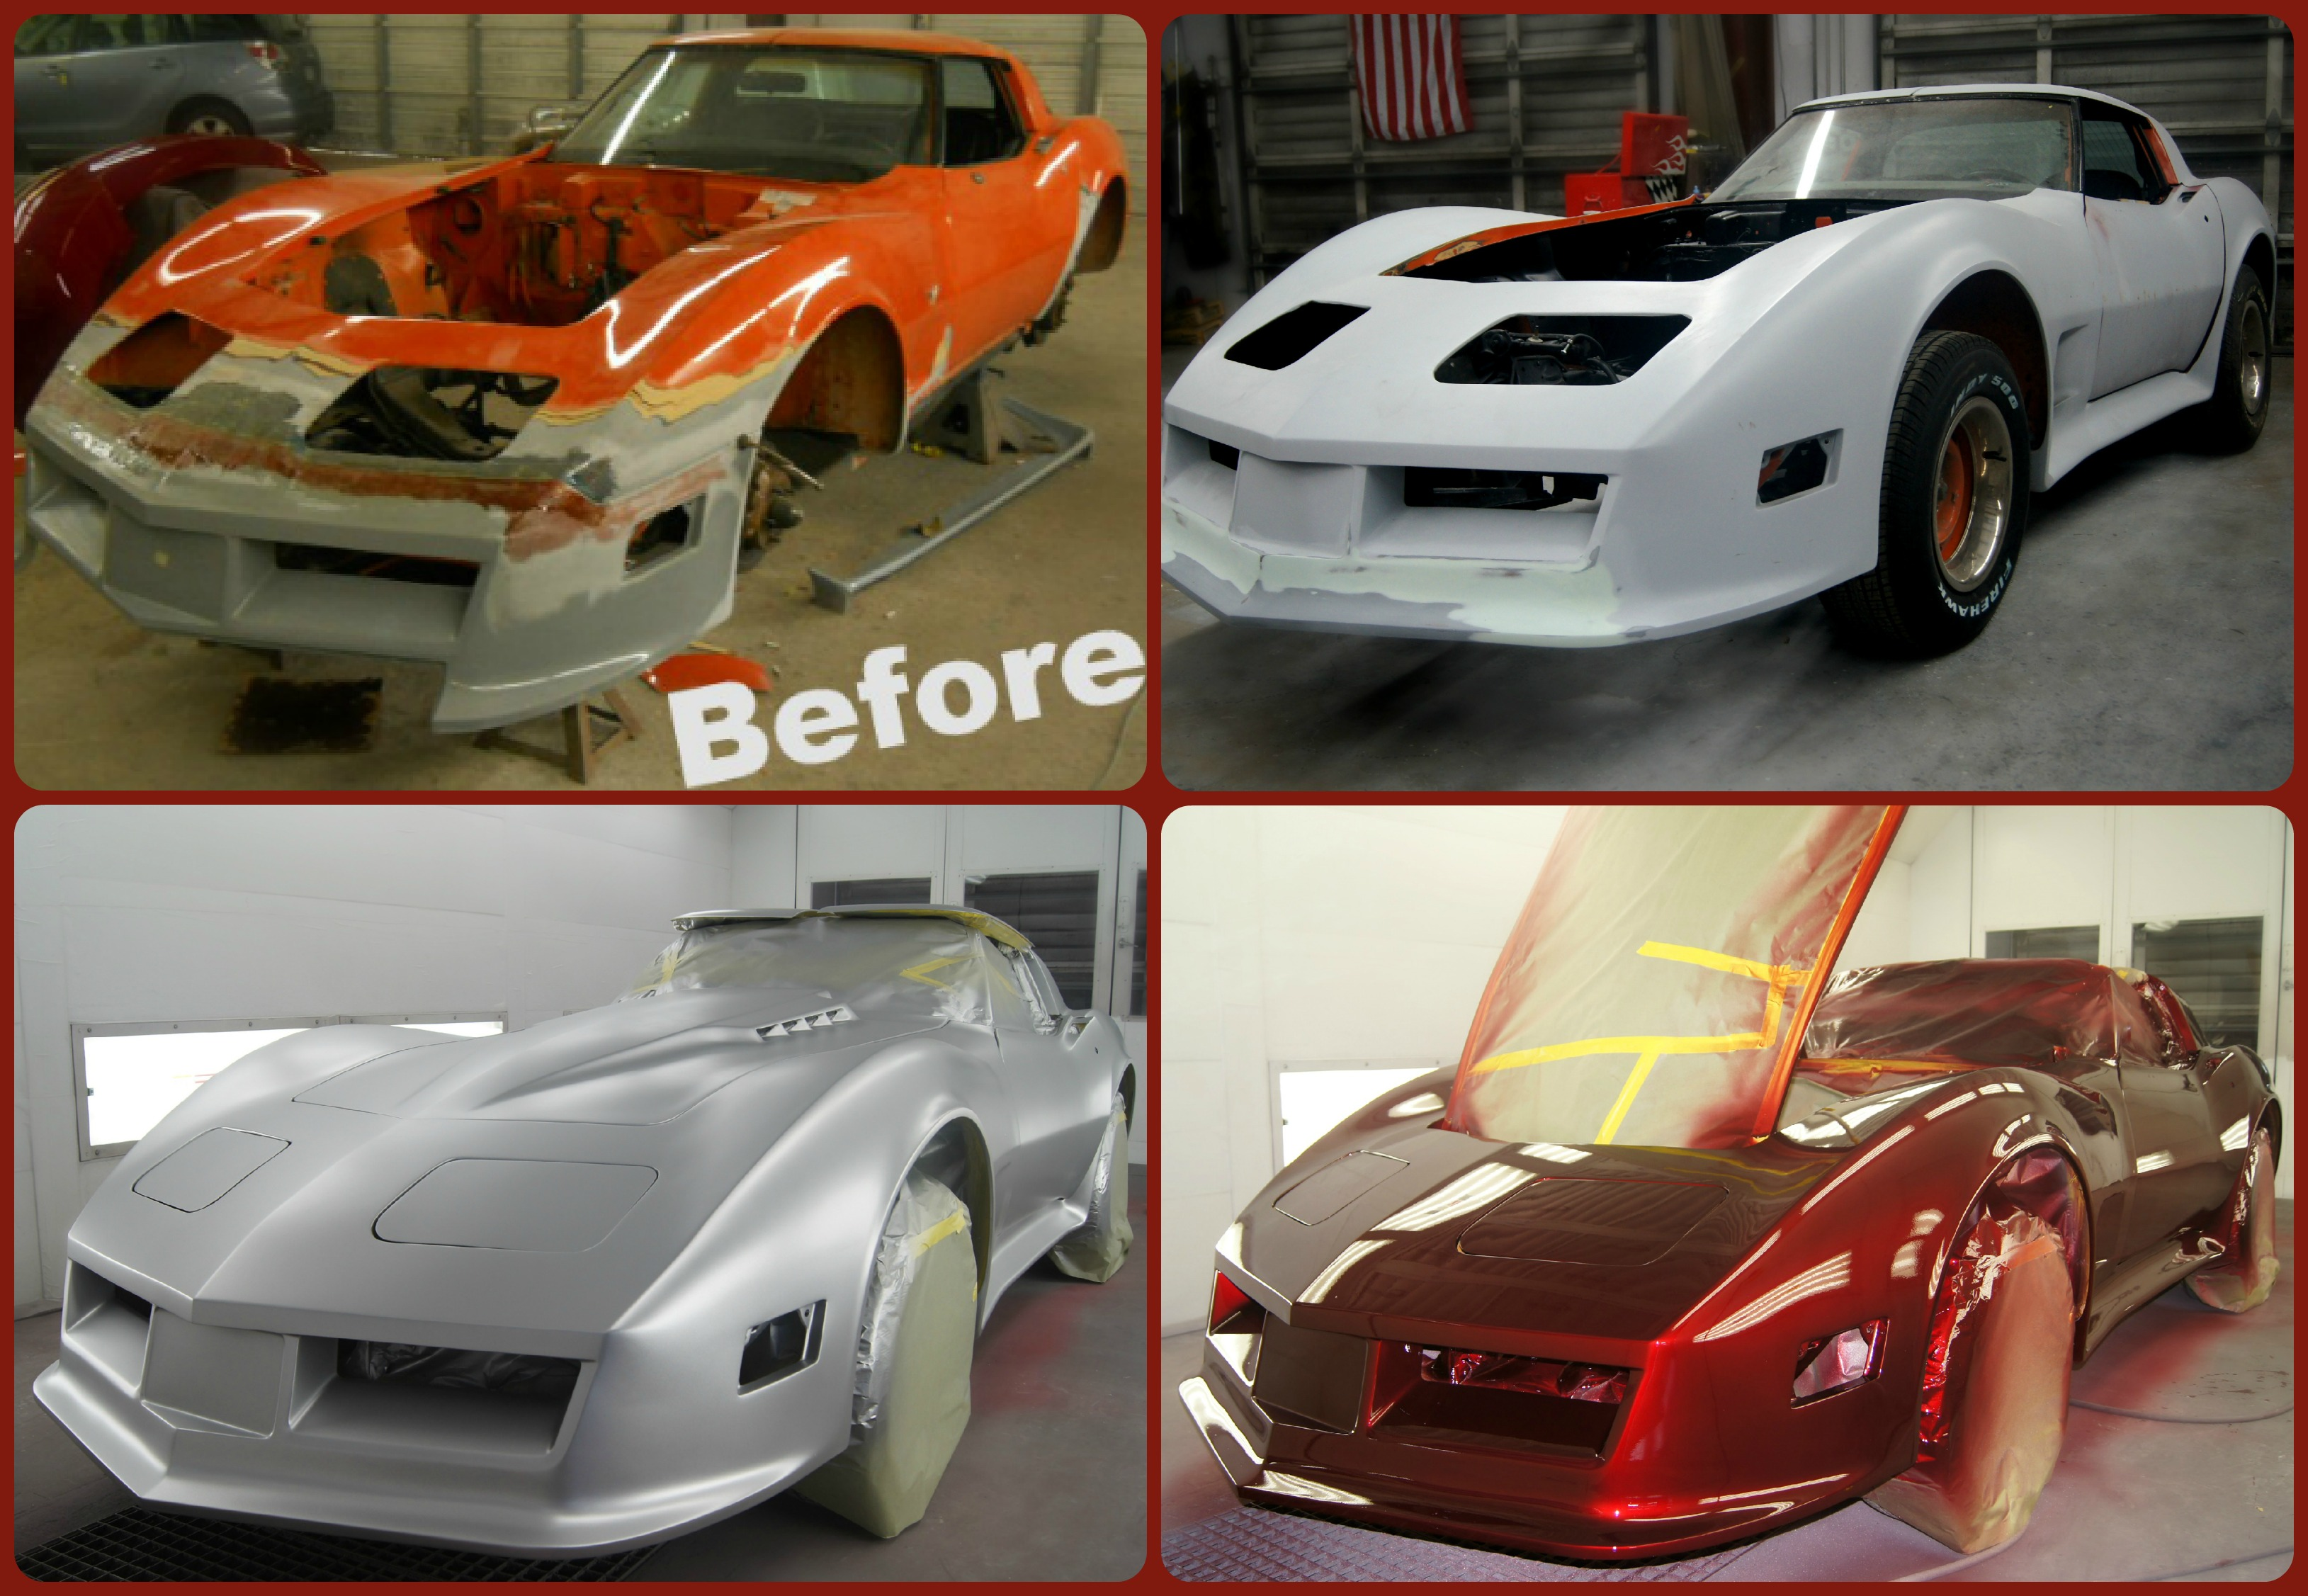 Kia Collision Center Las Vegas >> International Paint And Body in Pearland, TX | Whitepages